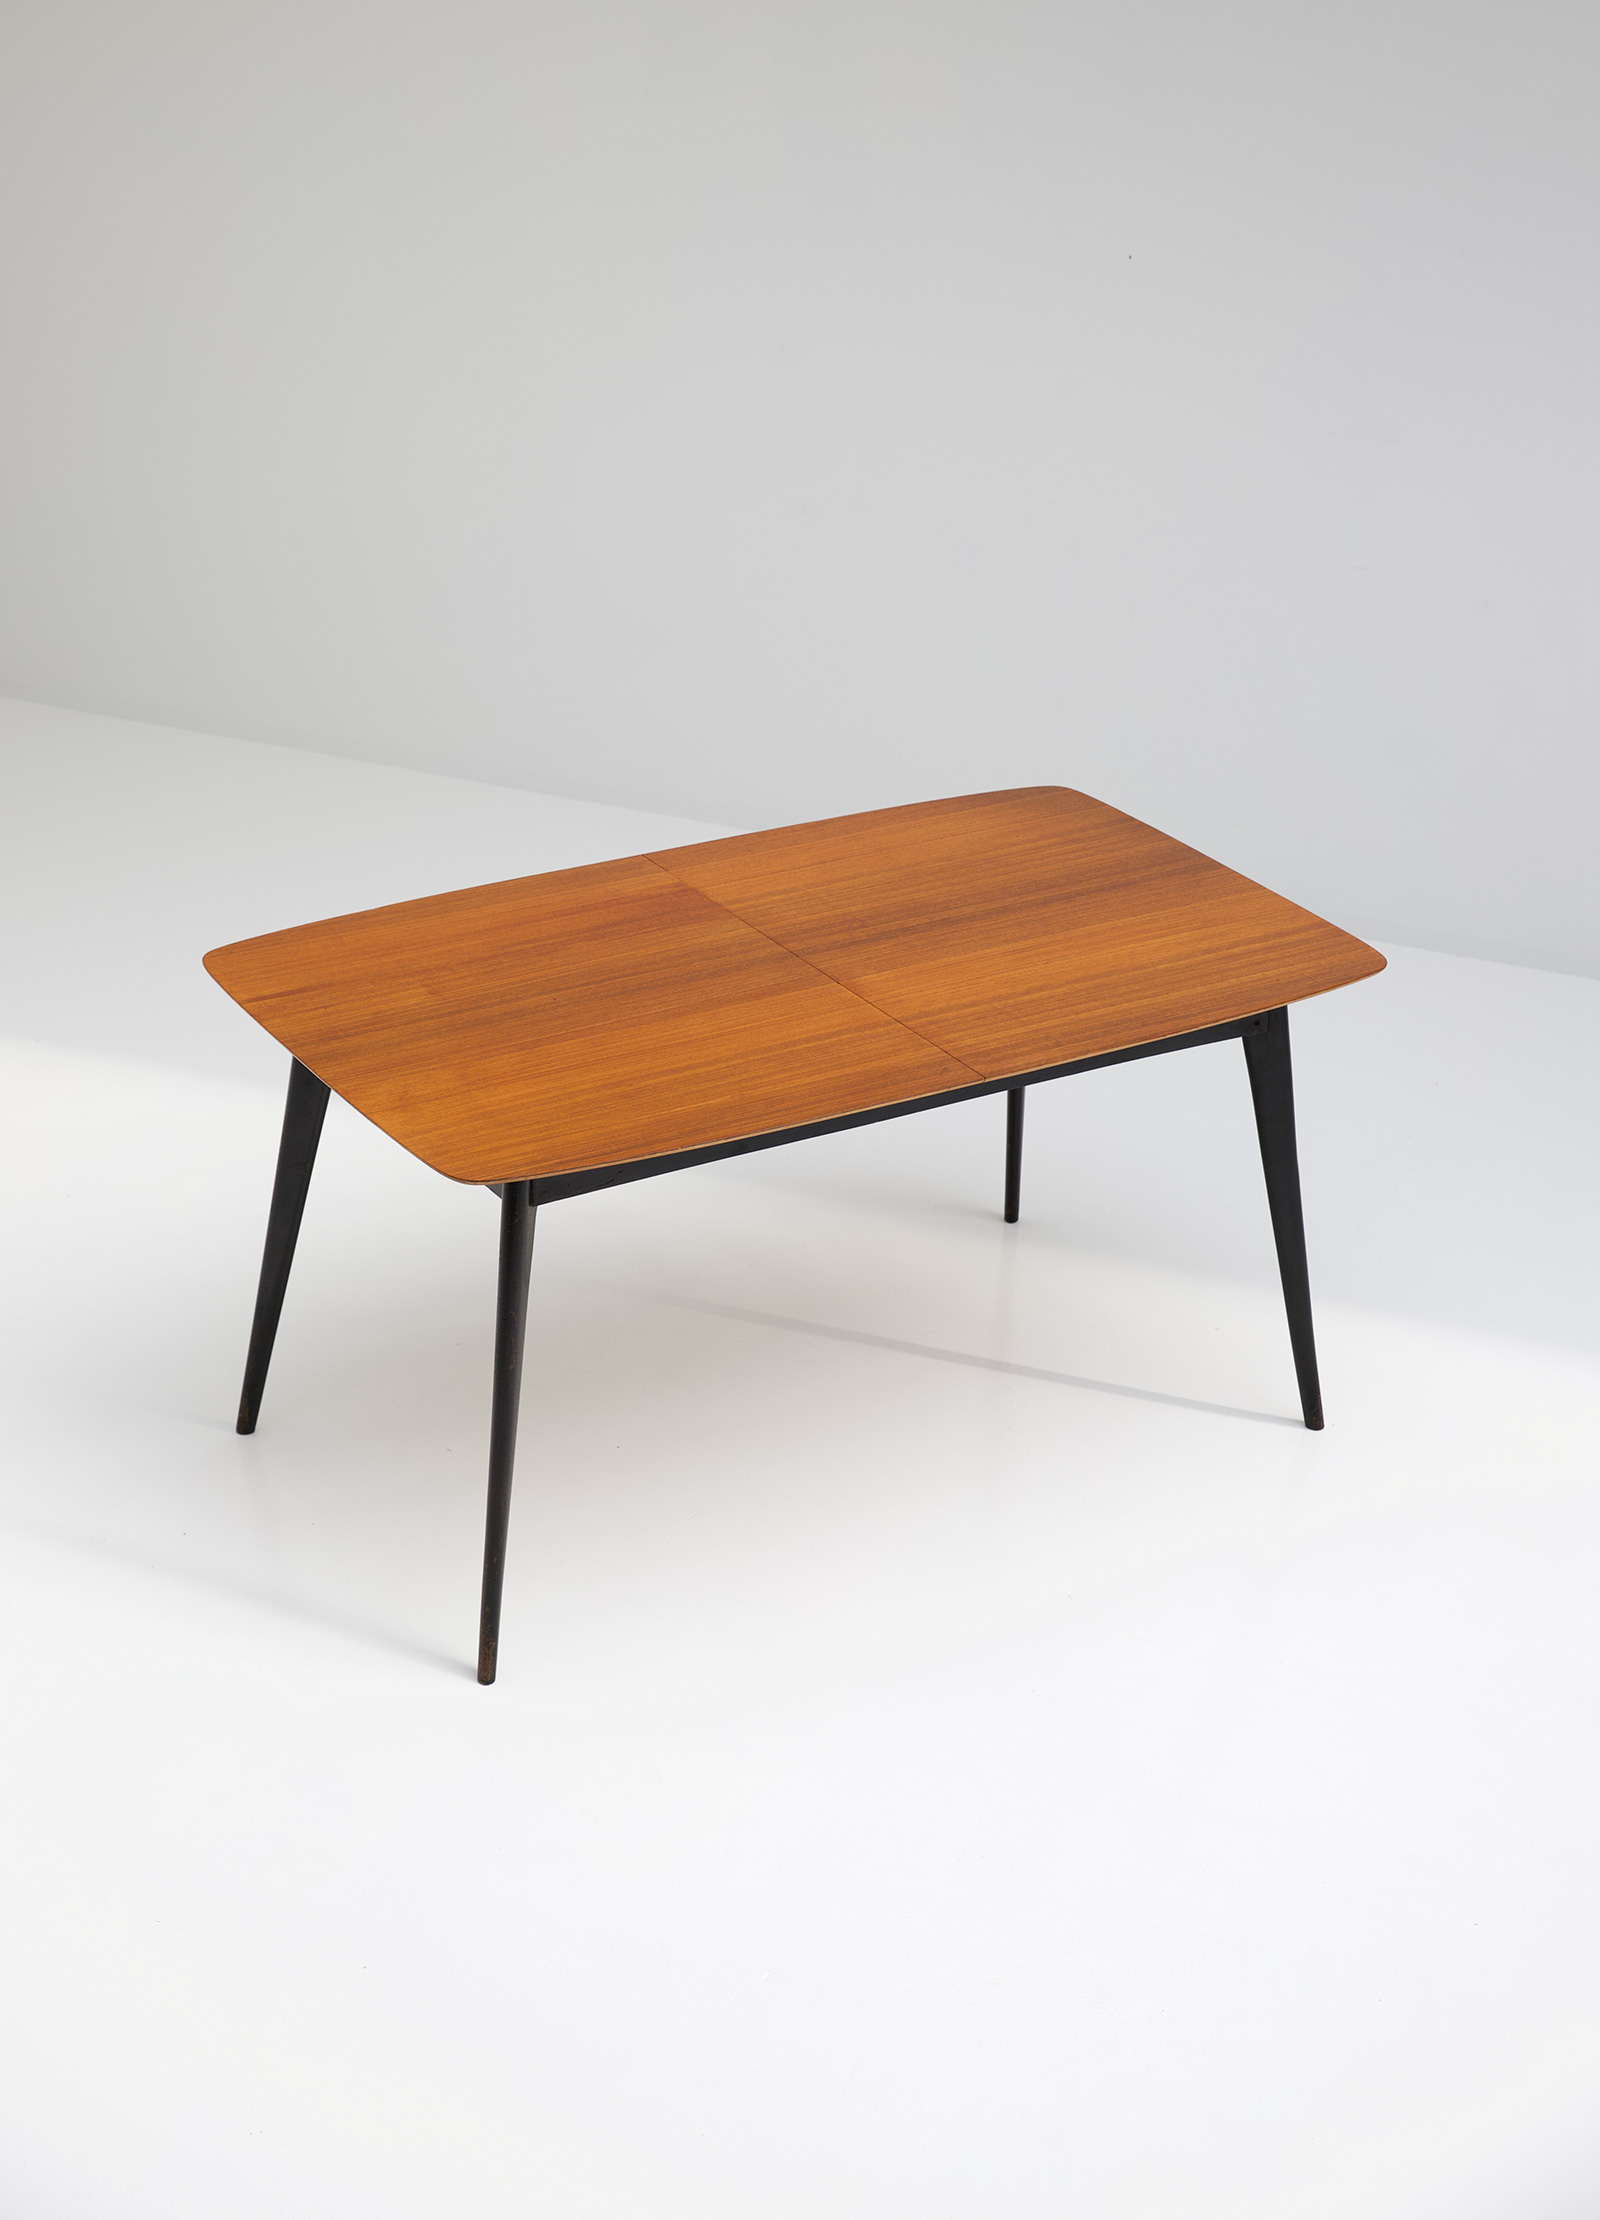 Alfred Hendrickx Dining Table M2 for Belform